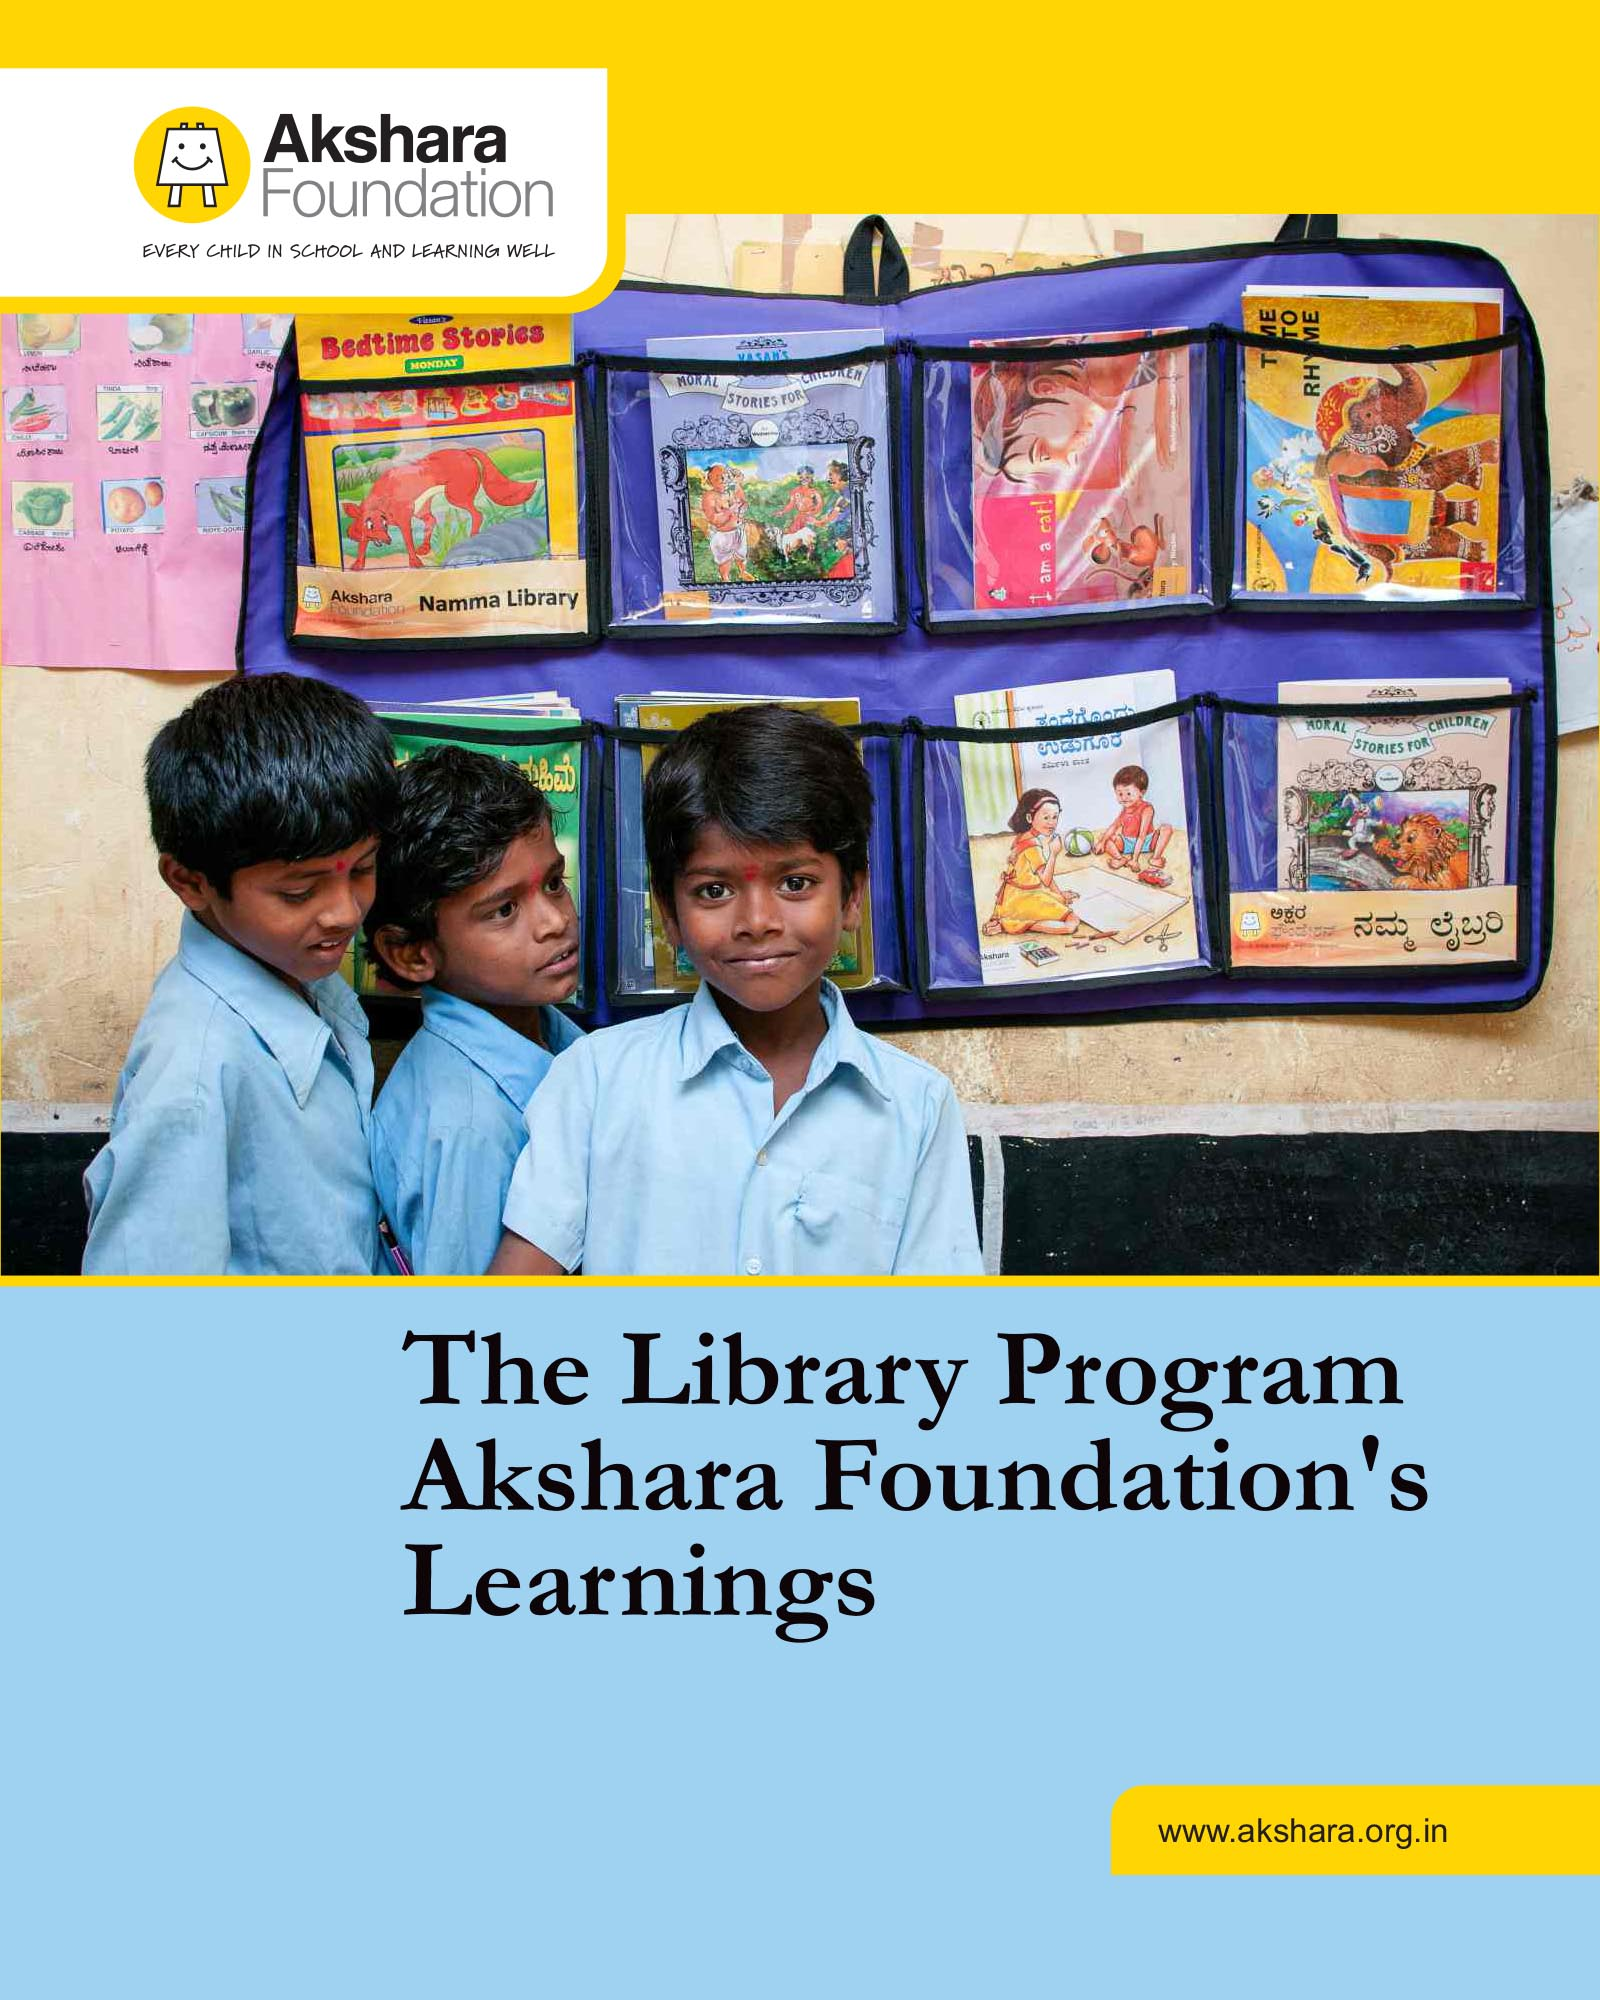 The Library Program - Akshara Foundation's Learnings, 2017